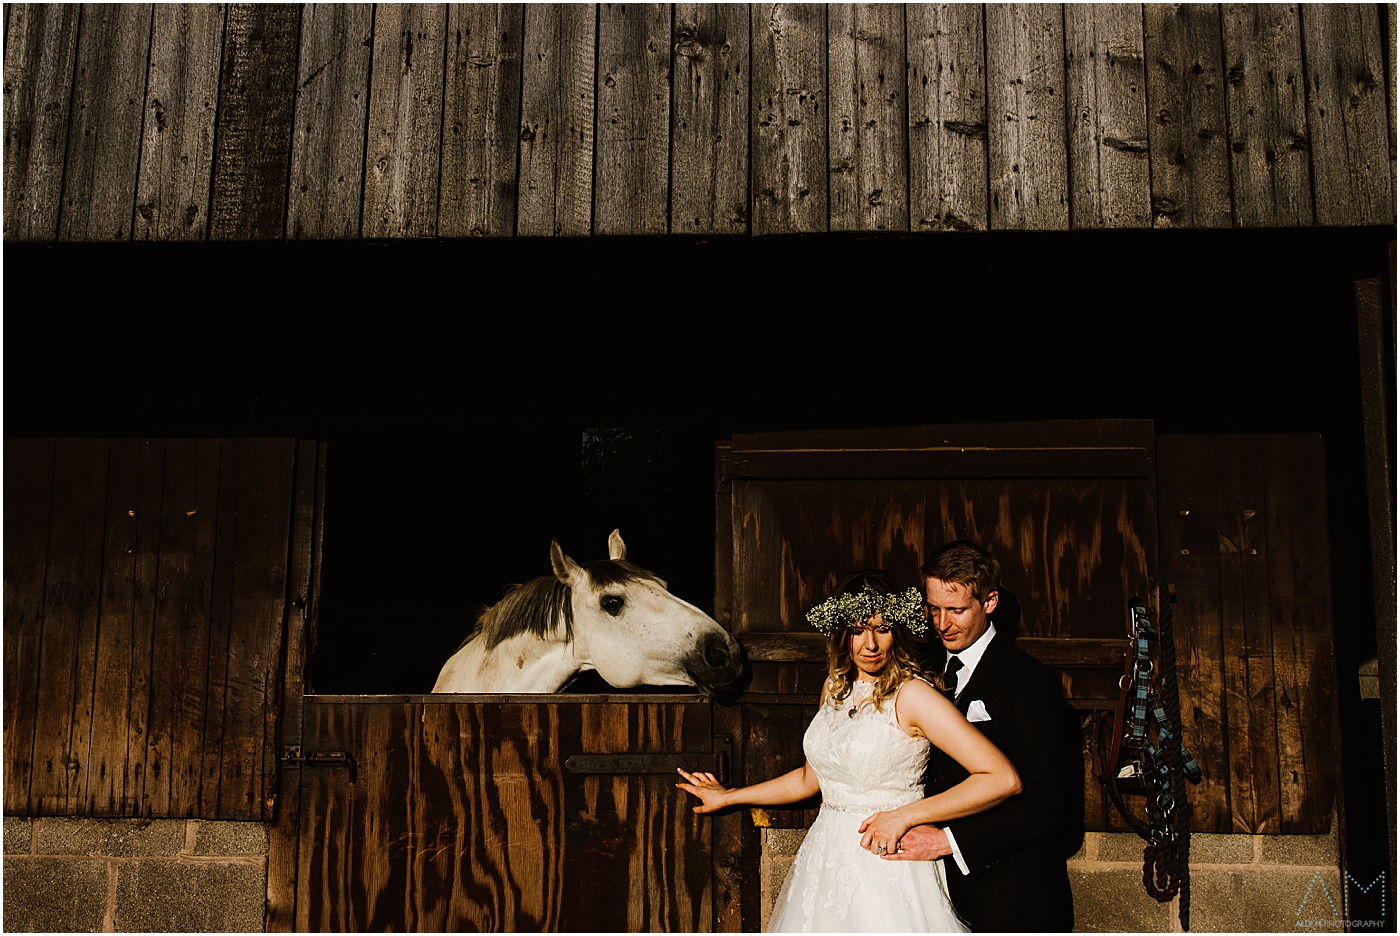 Bride and groom posing with a horse